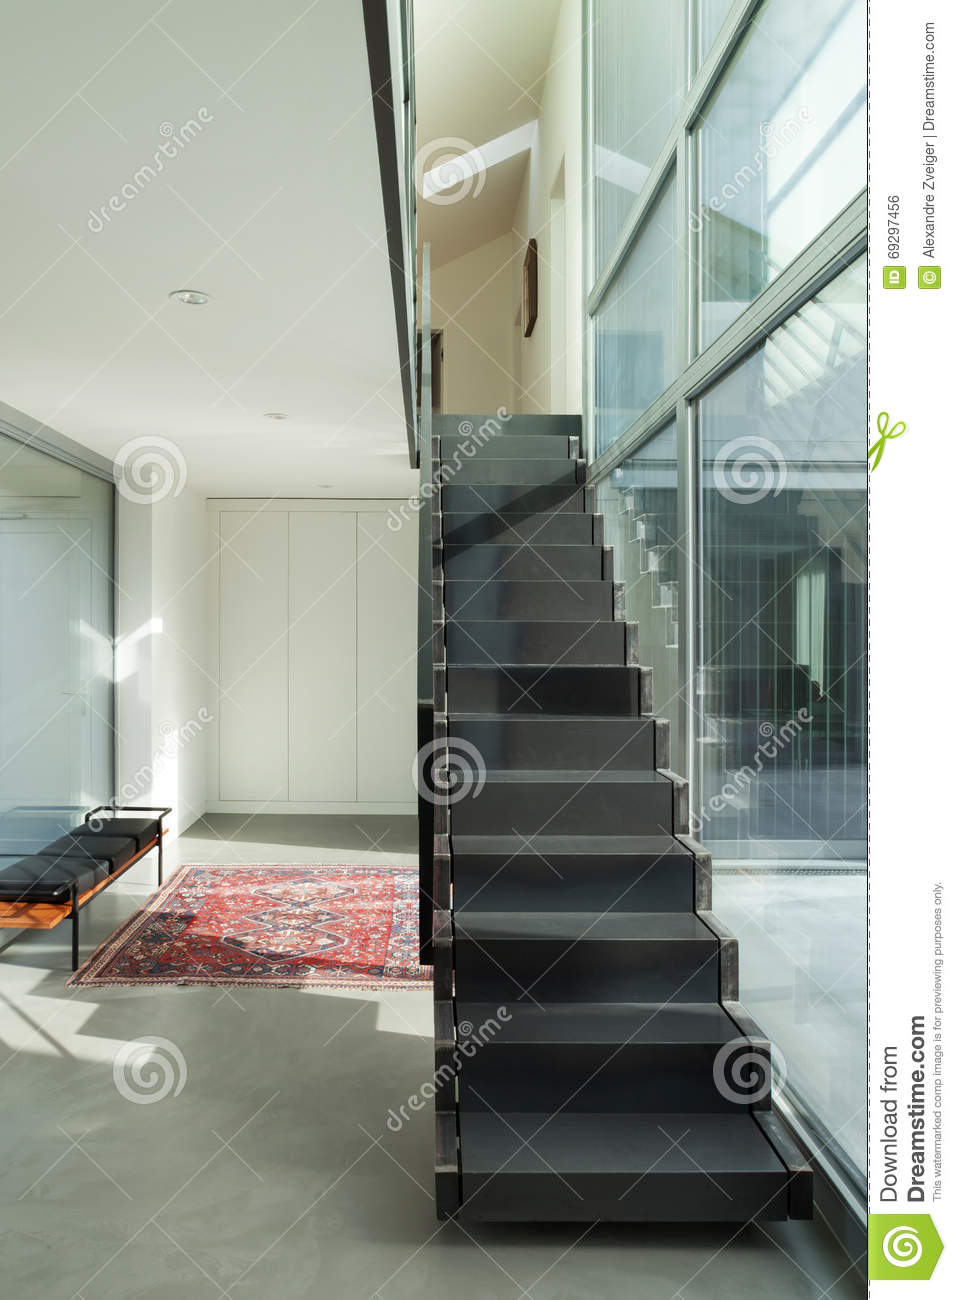 Int rieur escalier de fer d 39 une maison moderne photo for Escalier moderne interieur